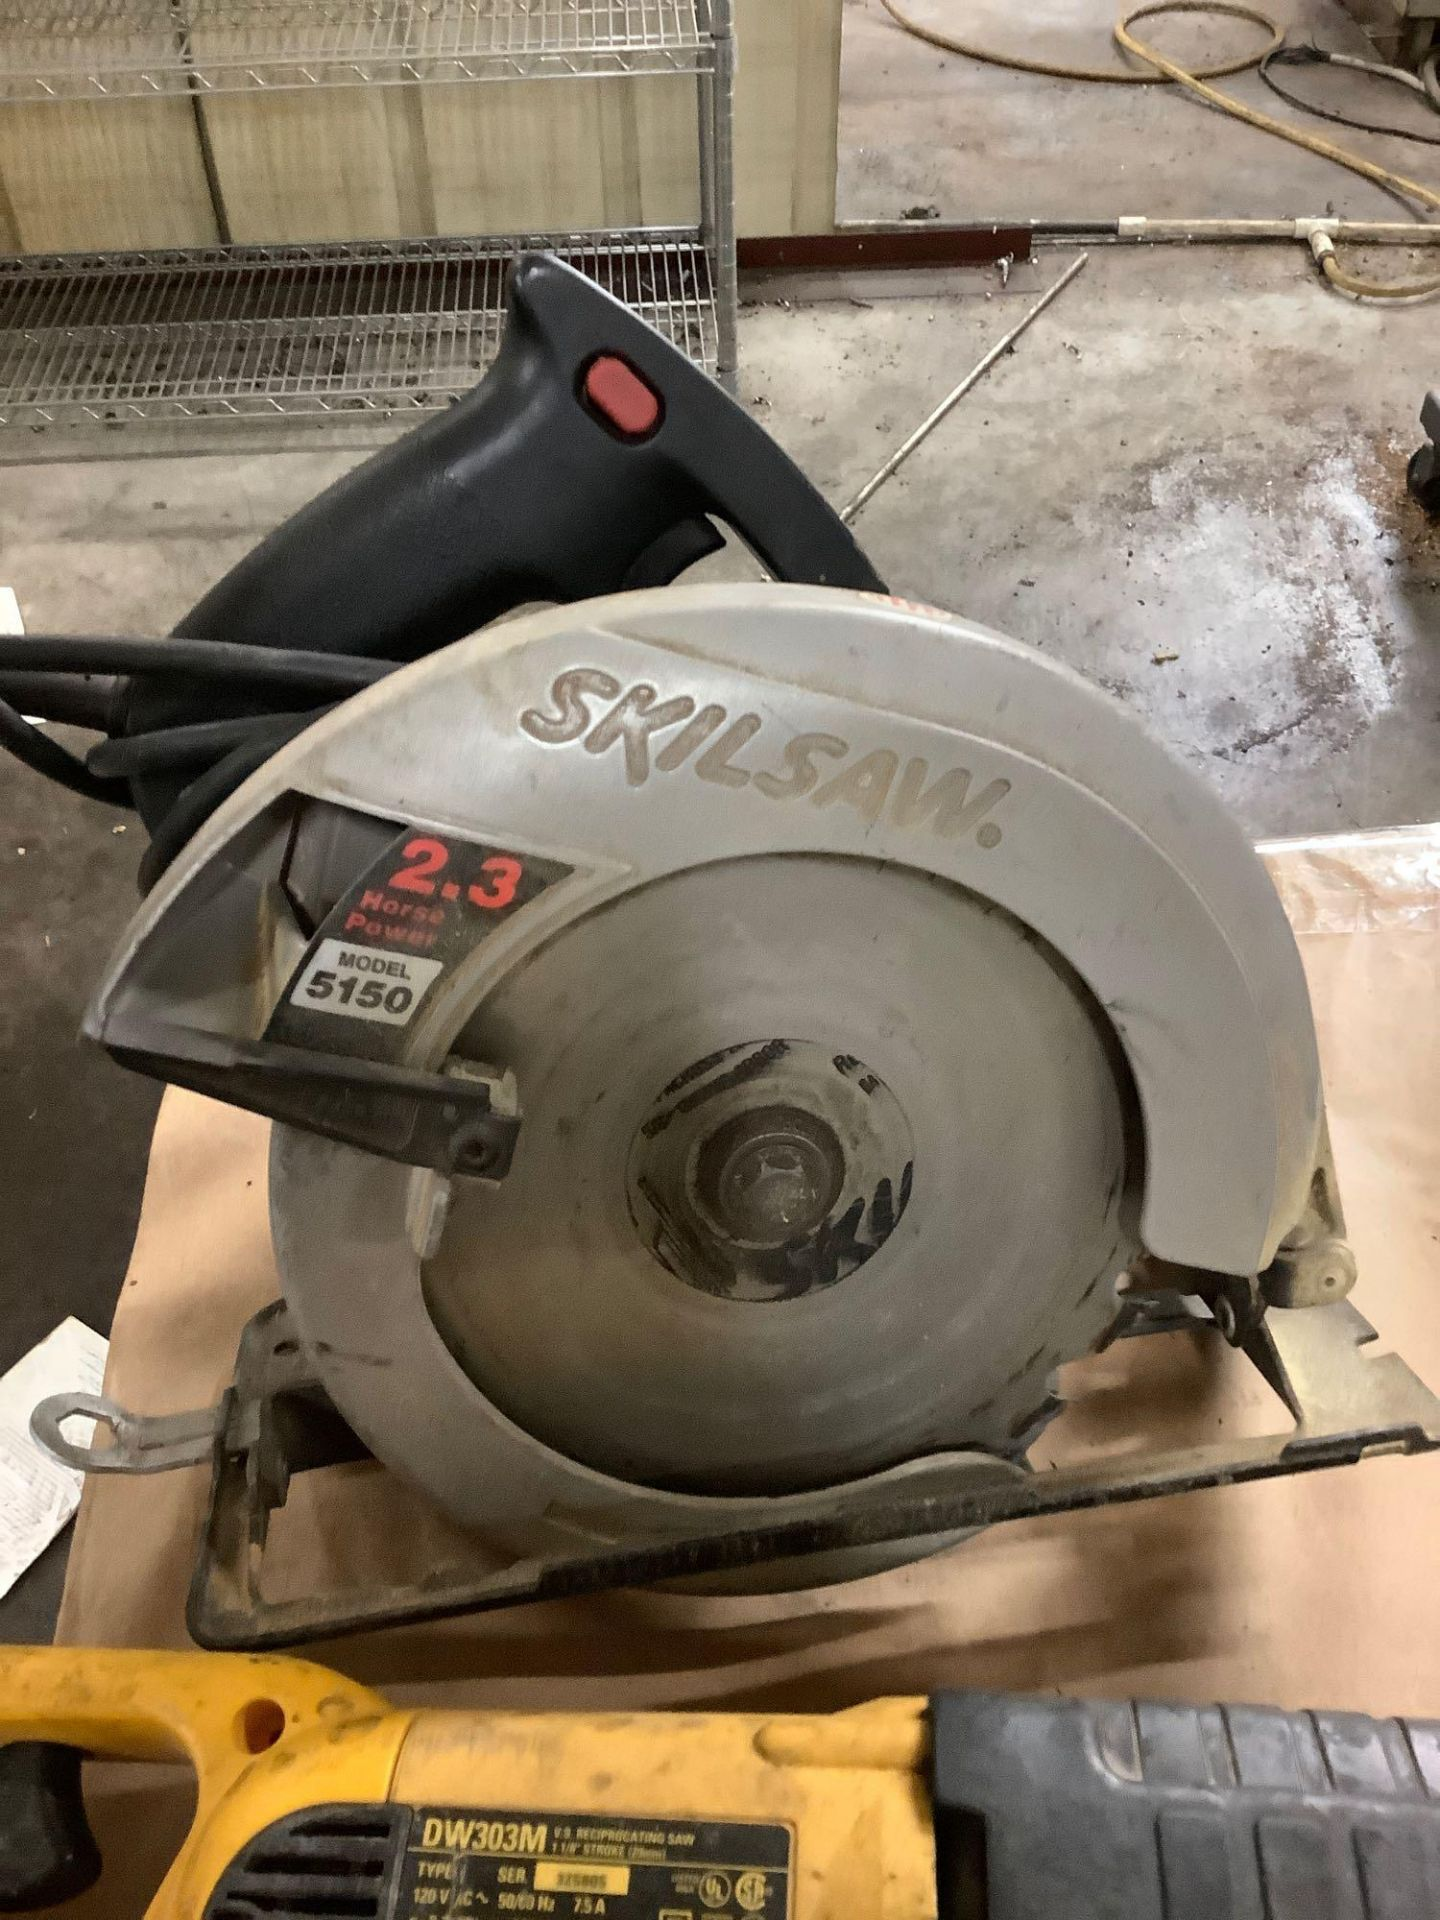 Lot of 3 Hand Saws - Image 2 of 5